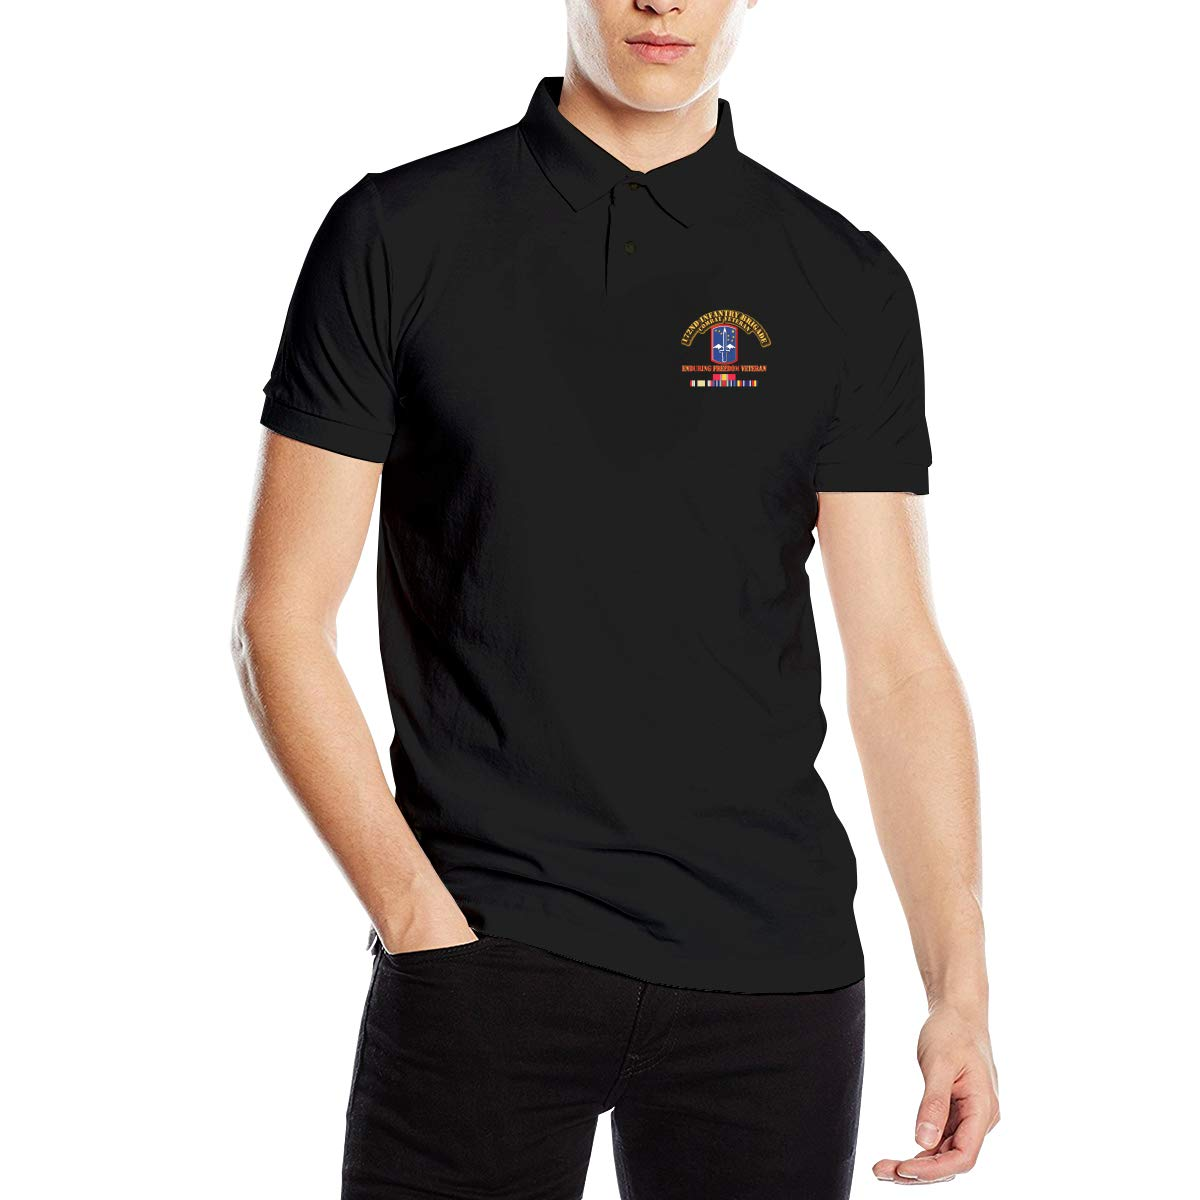 172nd Infantry Brigade Mens Regular-Fit Cotton Polo Shirt Short Sleeve